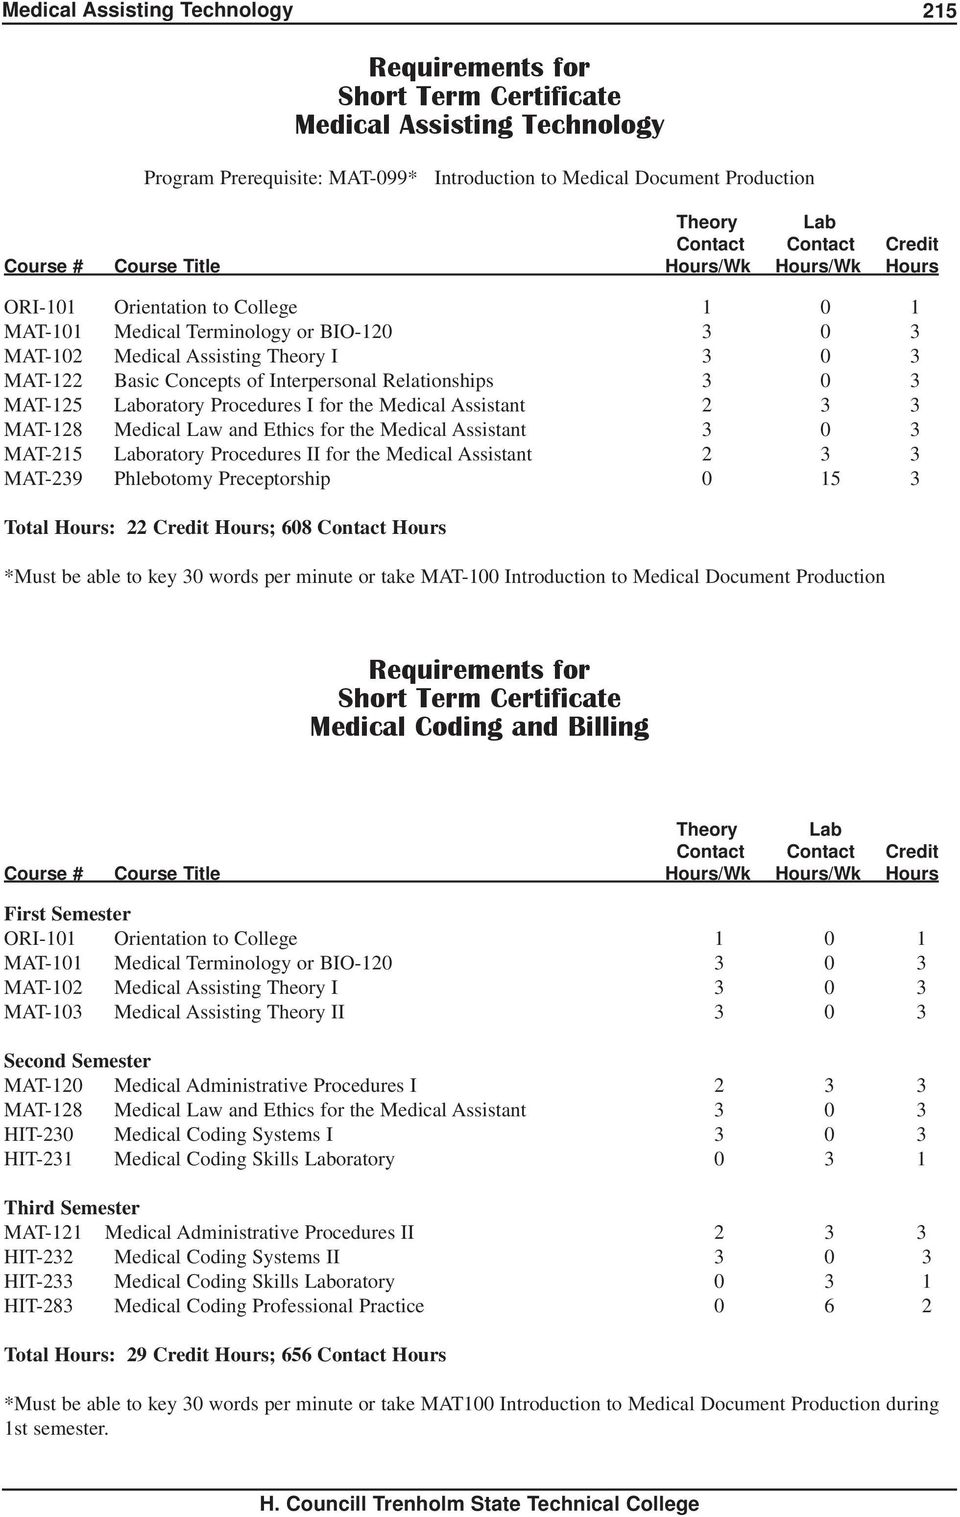 Medical Assistant 2 3 3 MAT-128 Medical Law and Ethics for the Medical Assistant 3 0 3 MAT-215 Laboratory Procedures II for the Medical Assistant 2 3 3 MAT-239 Phlebotomy Preceptorship 0 15 3 Total